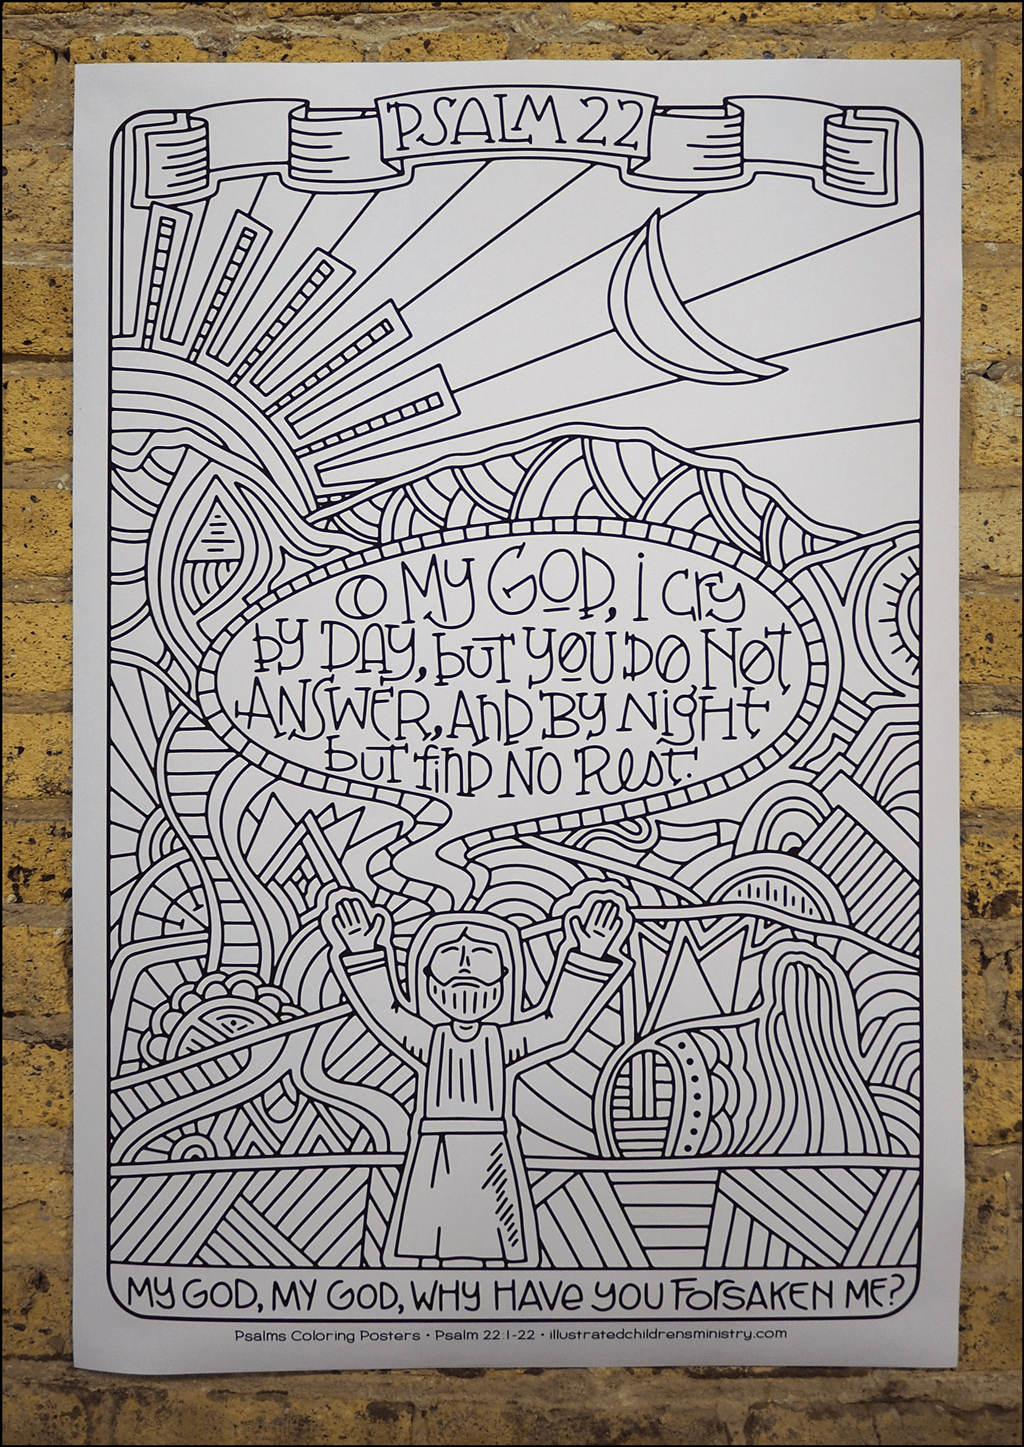 Psalms coloring poster - My God, my God, why have you forsaken me?